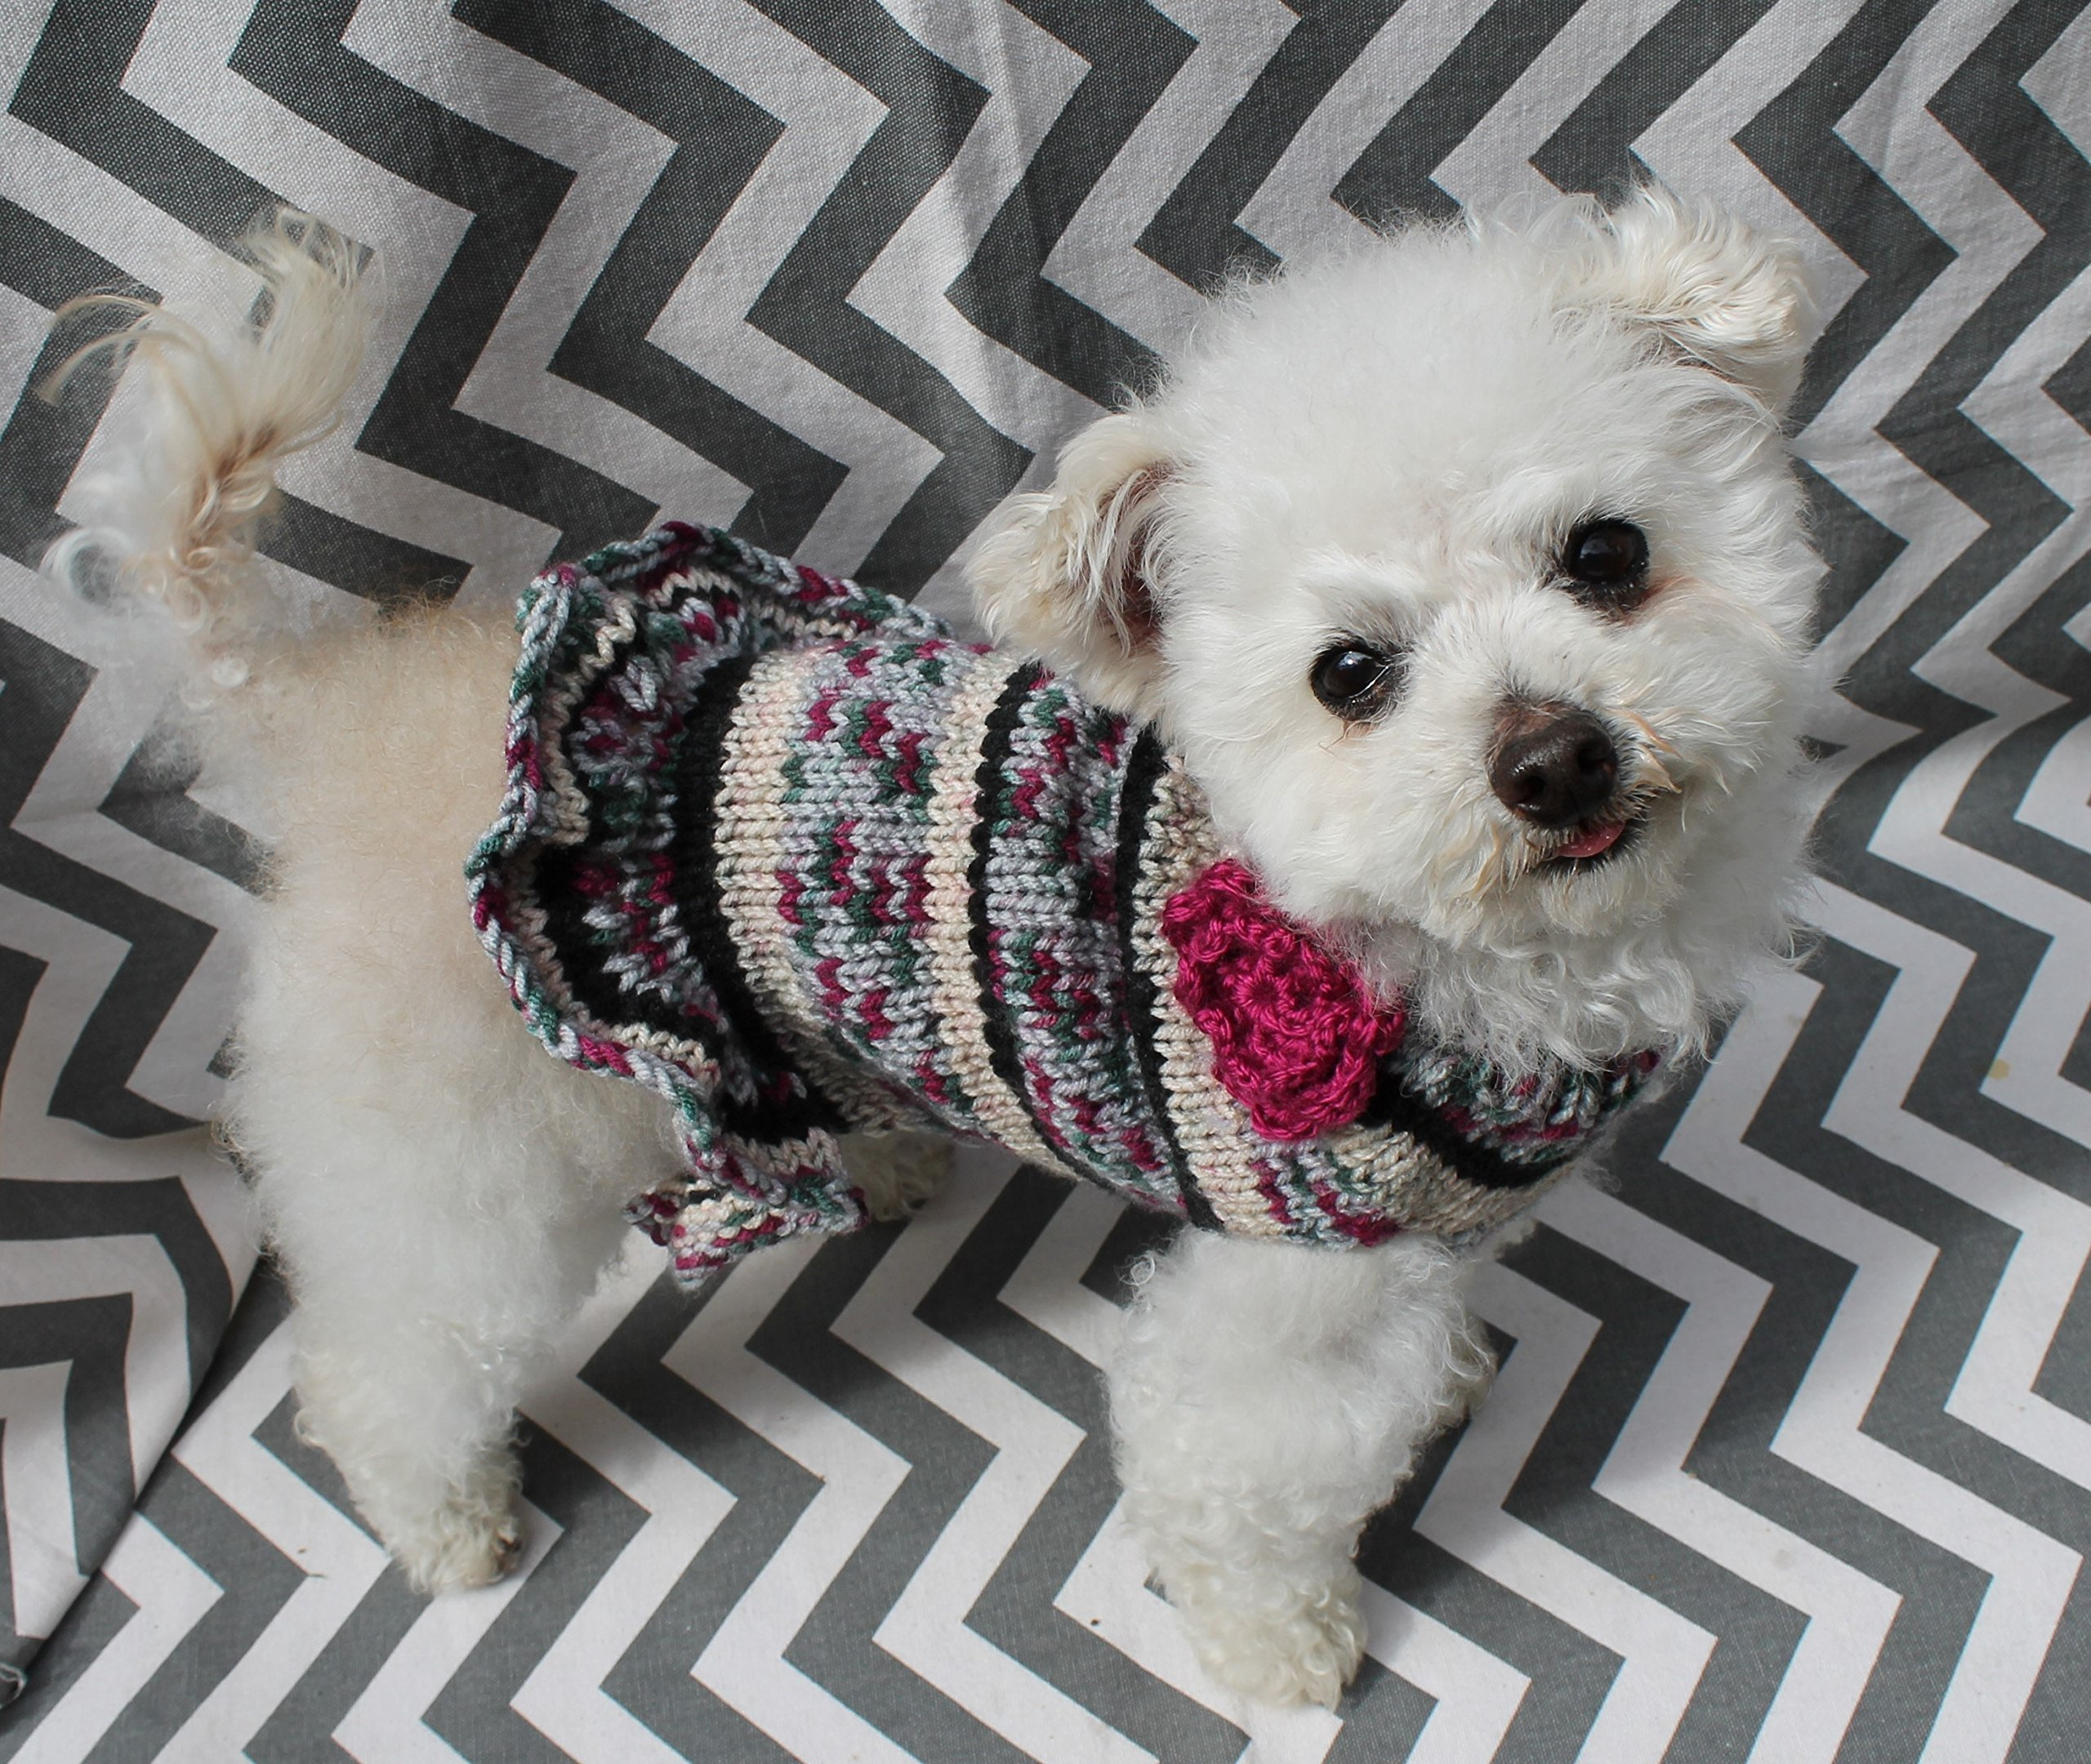 Rustic Dog Puppy Sweater Dress XS/S 4 to 6 Lbs with Ruffle Yorkie Pomeranian Maltese Toy Poodle Teacup Maltipoo cockapoo Puppy Bichon